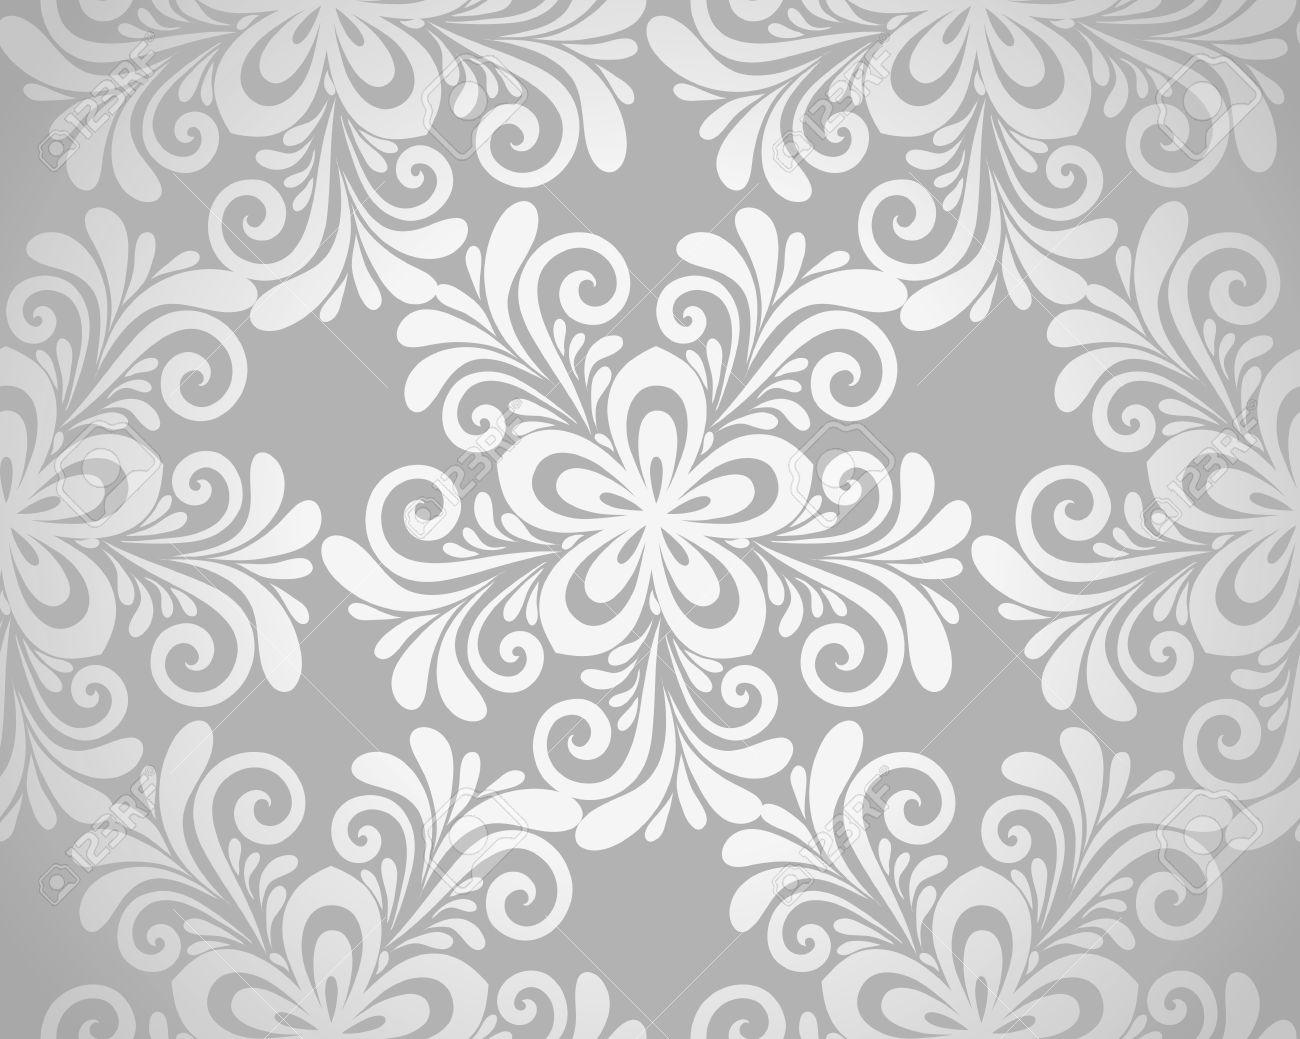 Excellent seamless floral background with flowers in silver excellent seamless floral background with flowers in silver many similarities to the author stock vector mightylinksfo